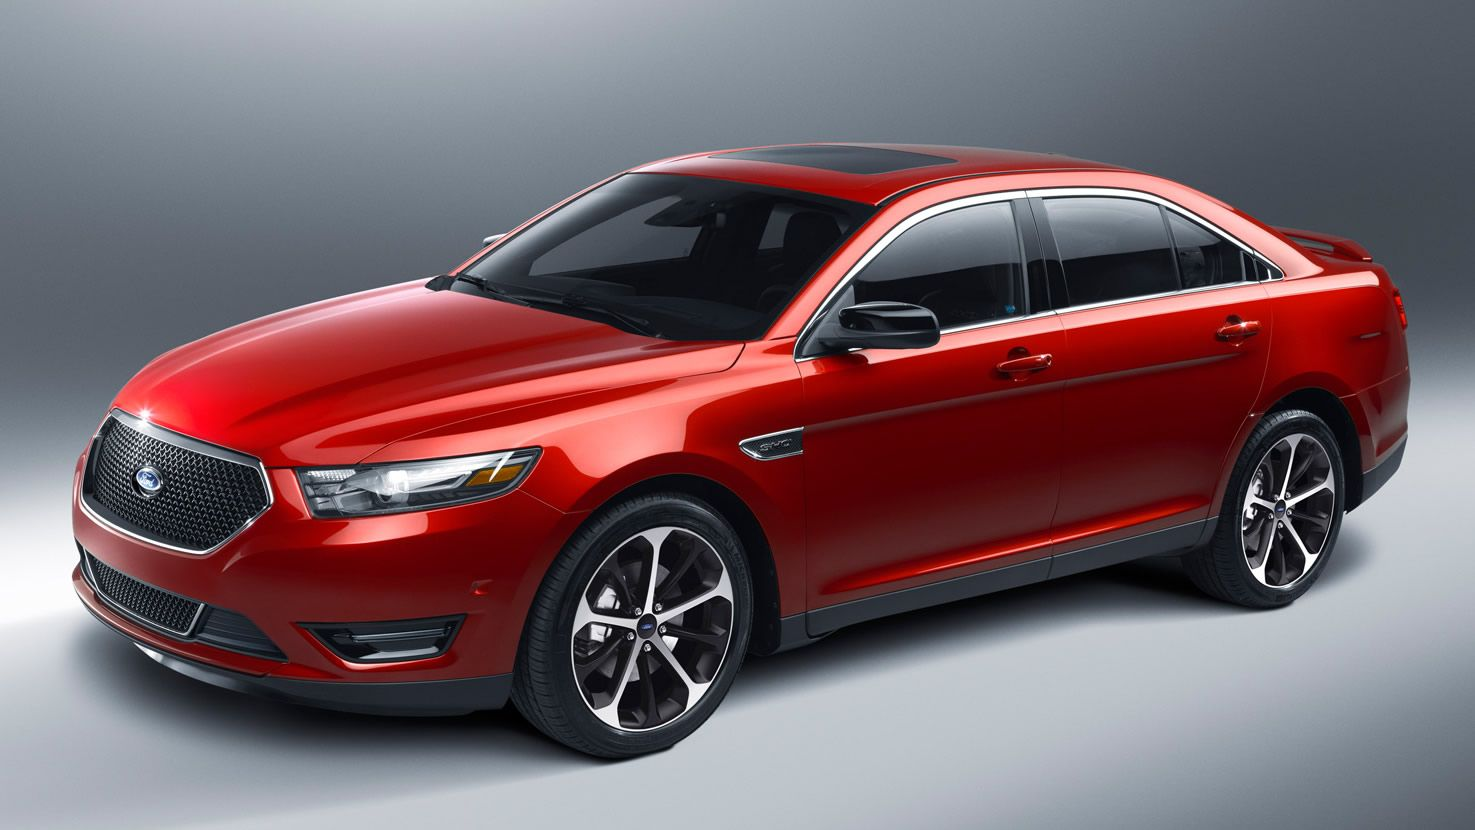 2015 Ford Taurus SHO - Specs, review, release date